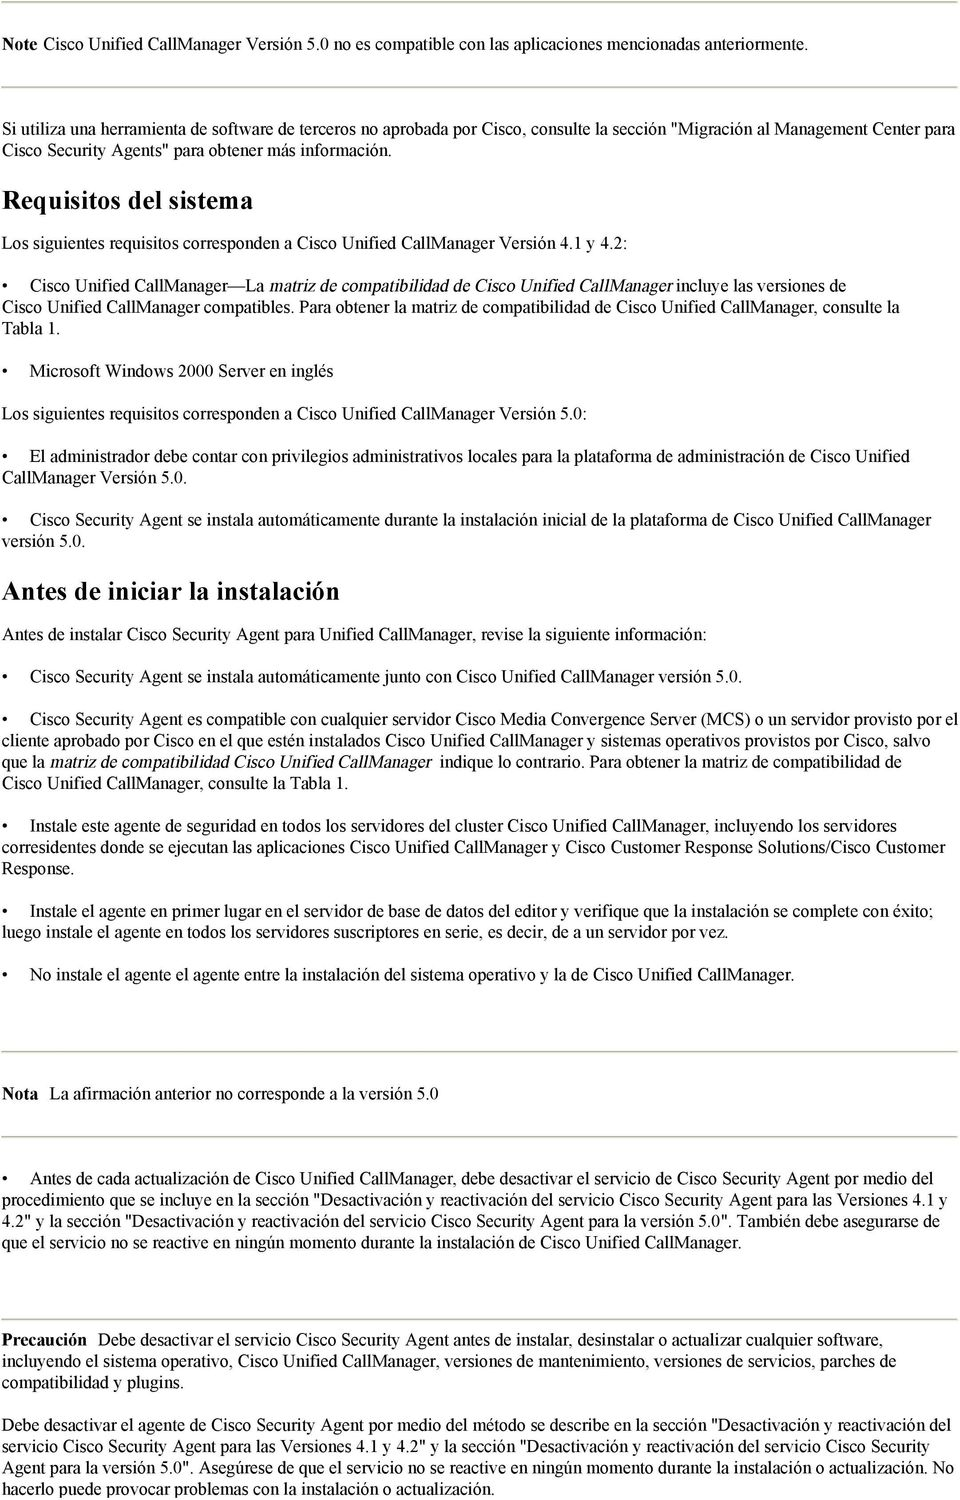 Requisitos del sistema Los siguientes requisitos corresponden a Cisco Unified CallManager Versión 4.1 y 4.